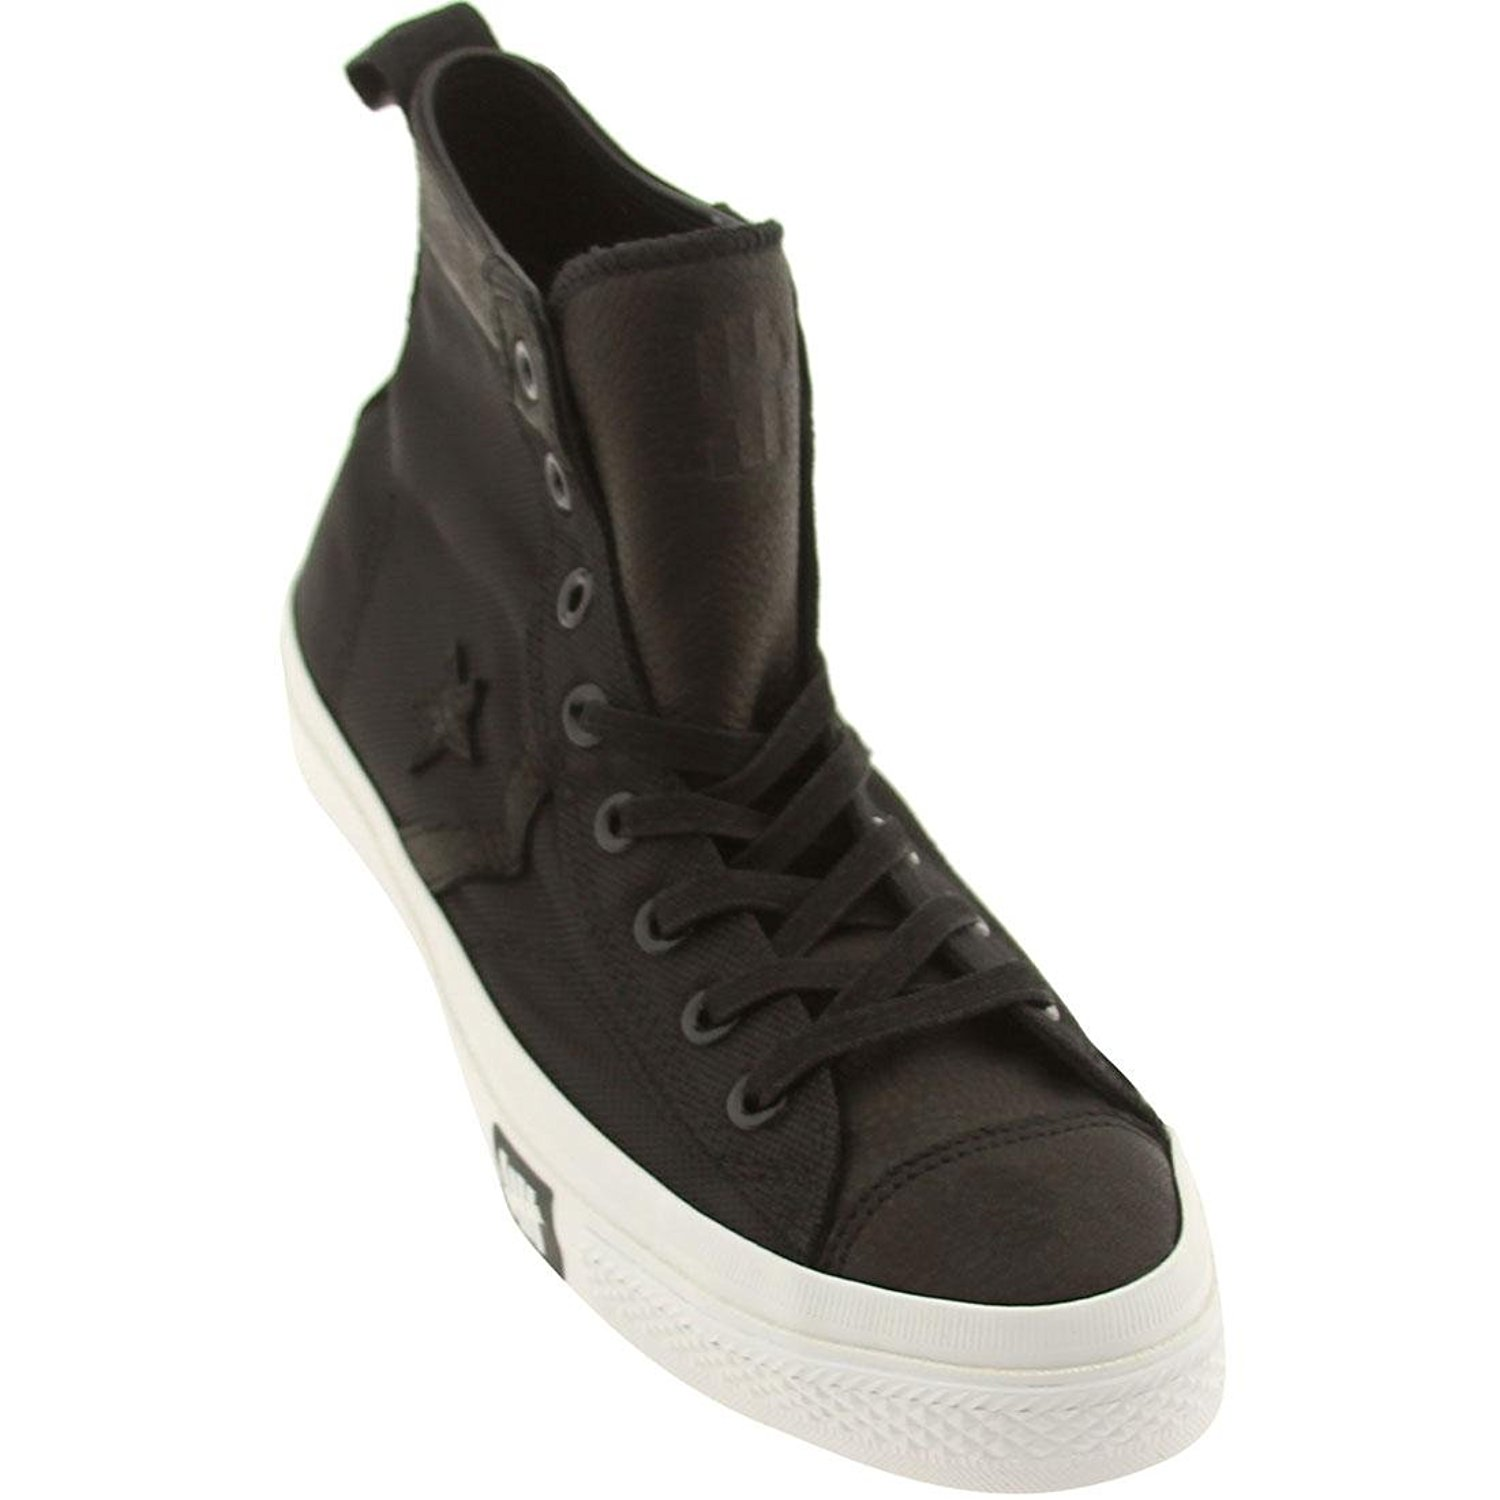 Cheap Cons Star Player Black, find Cons Star Player Black